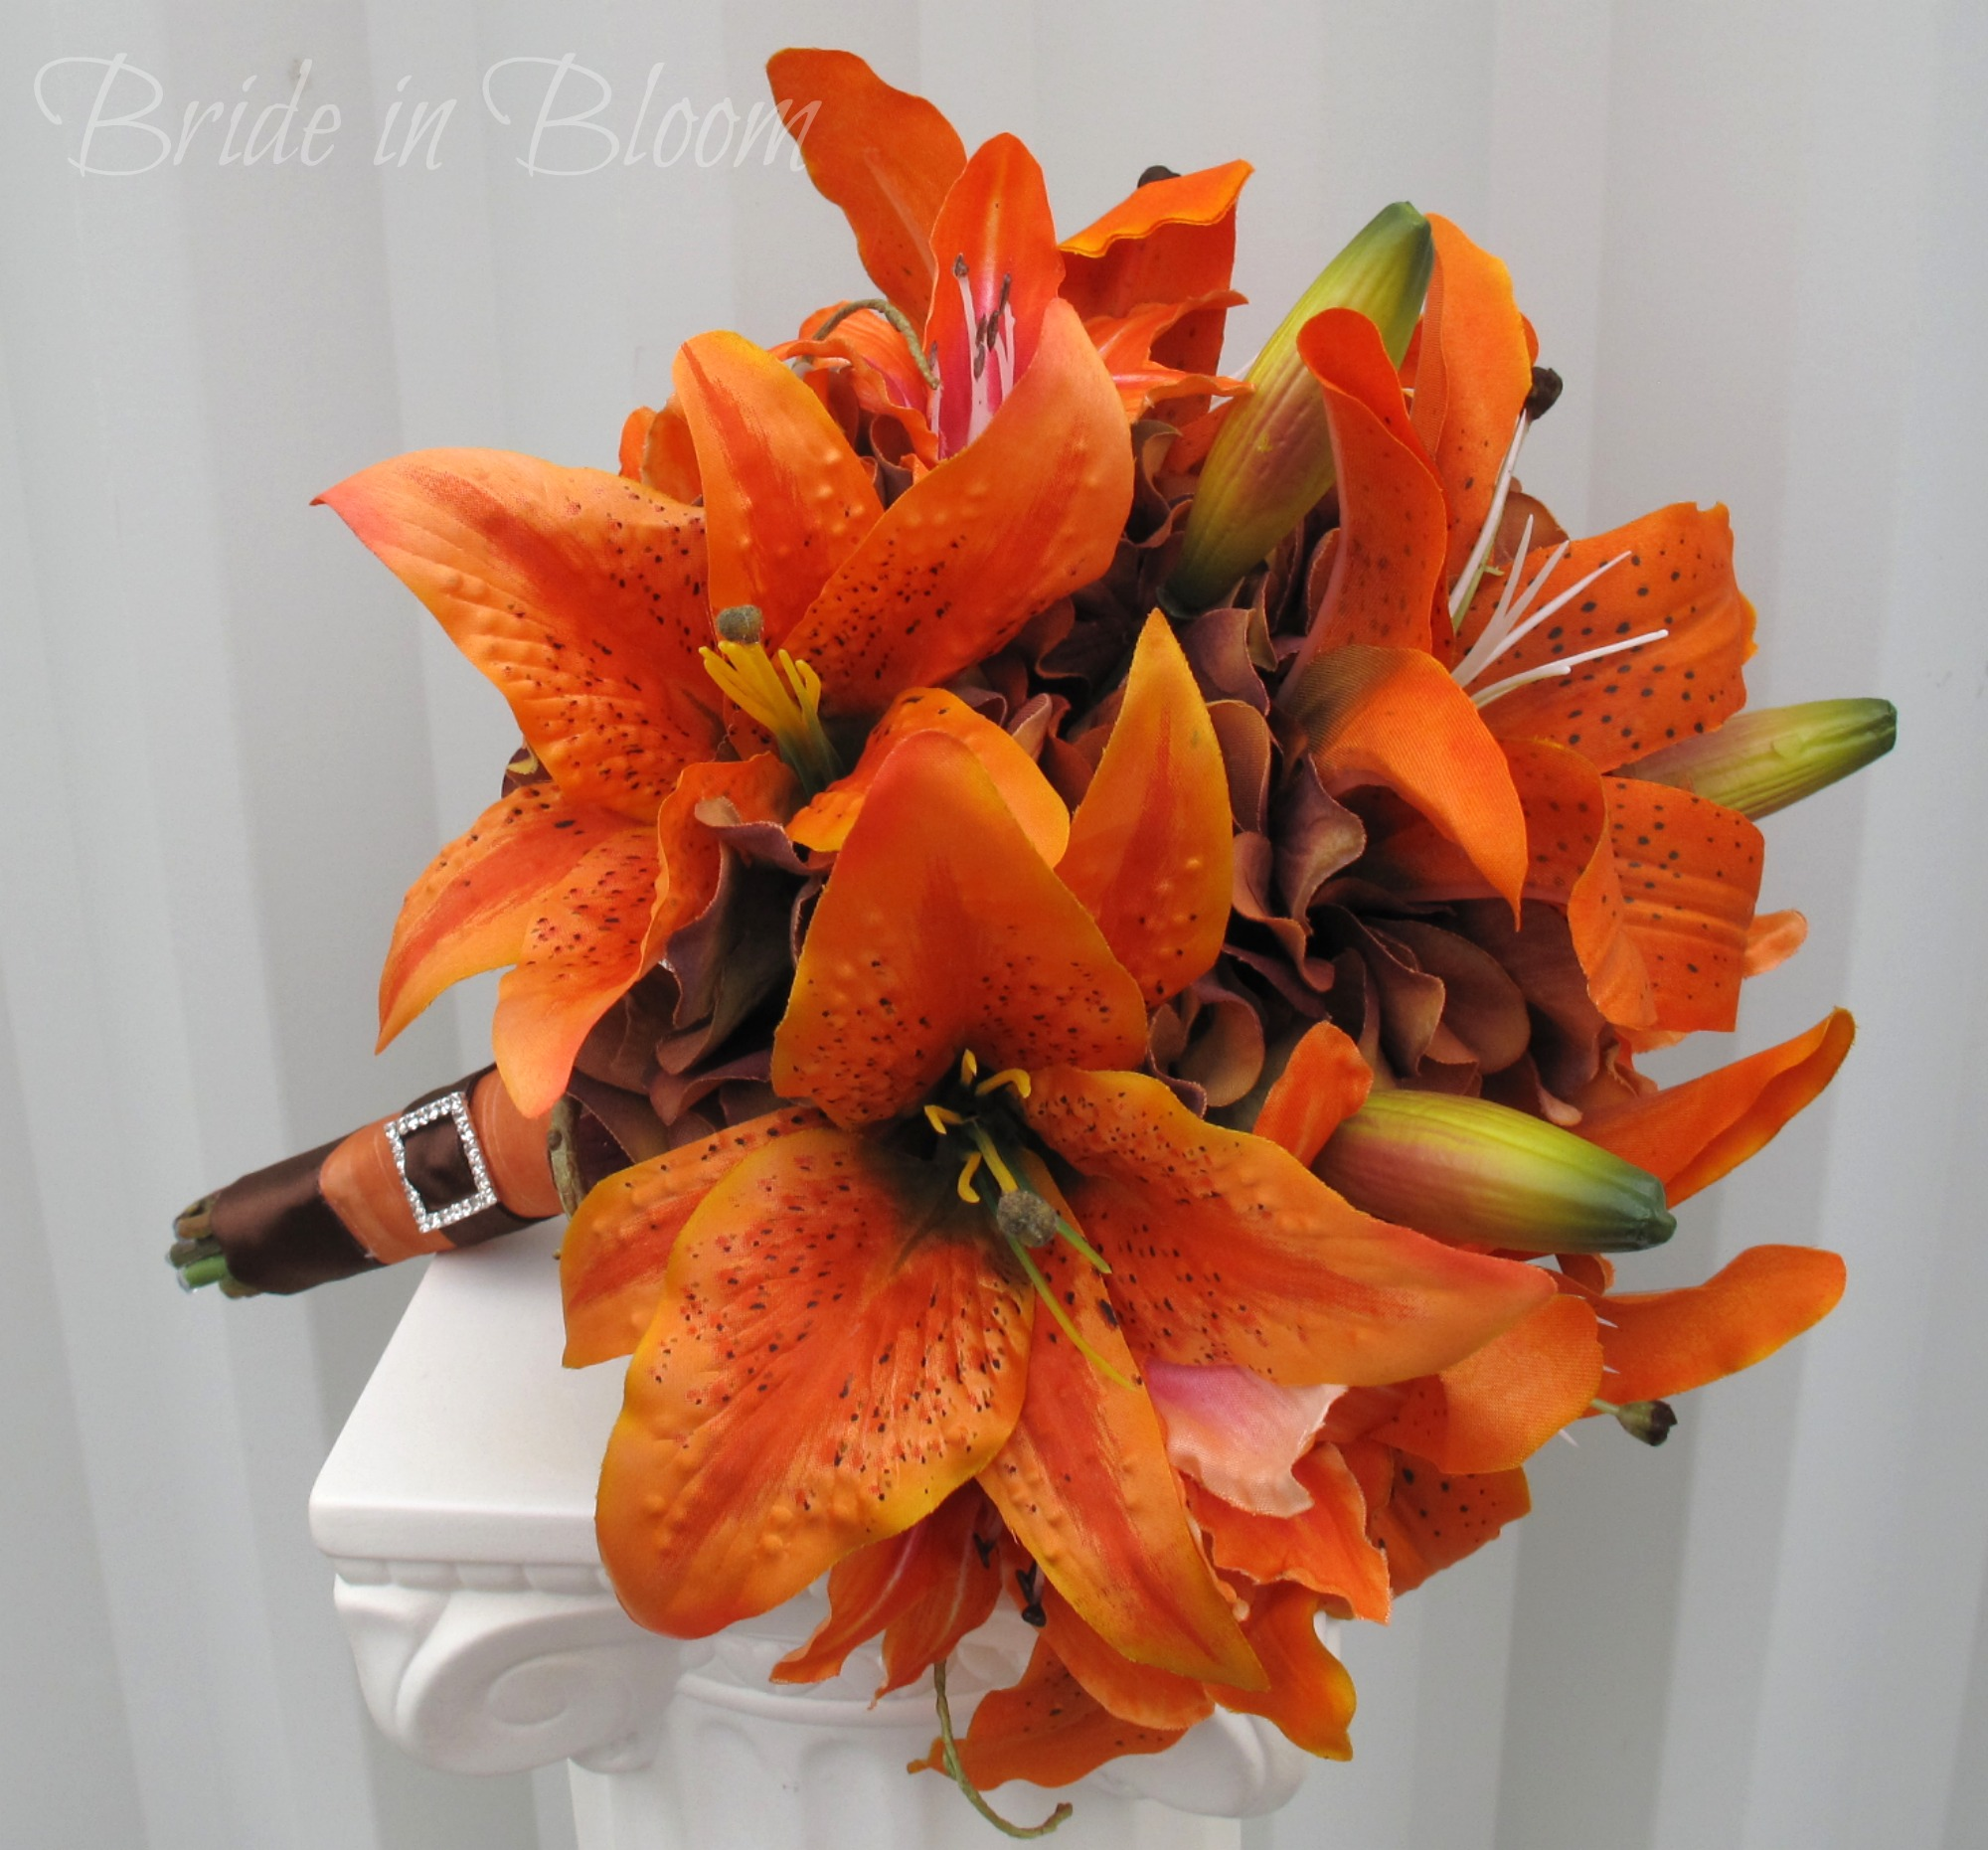 tiger lily wedding bouquet photo - 1